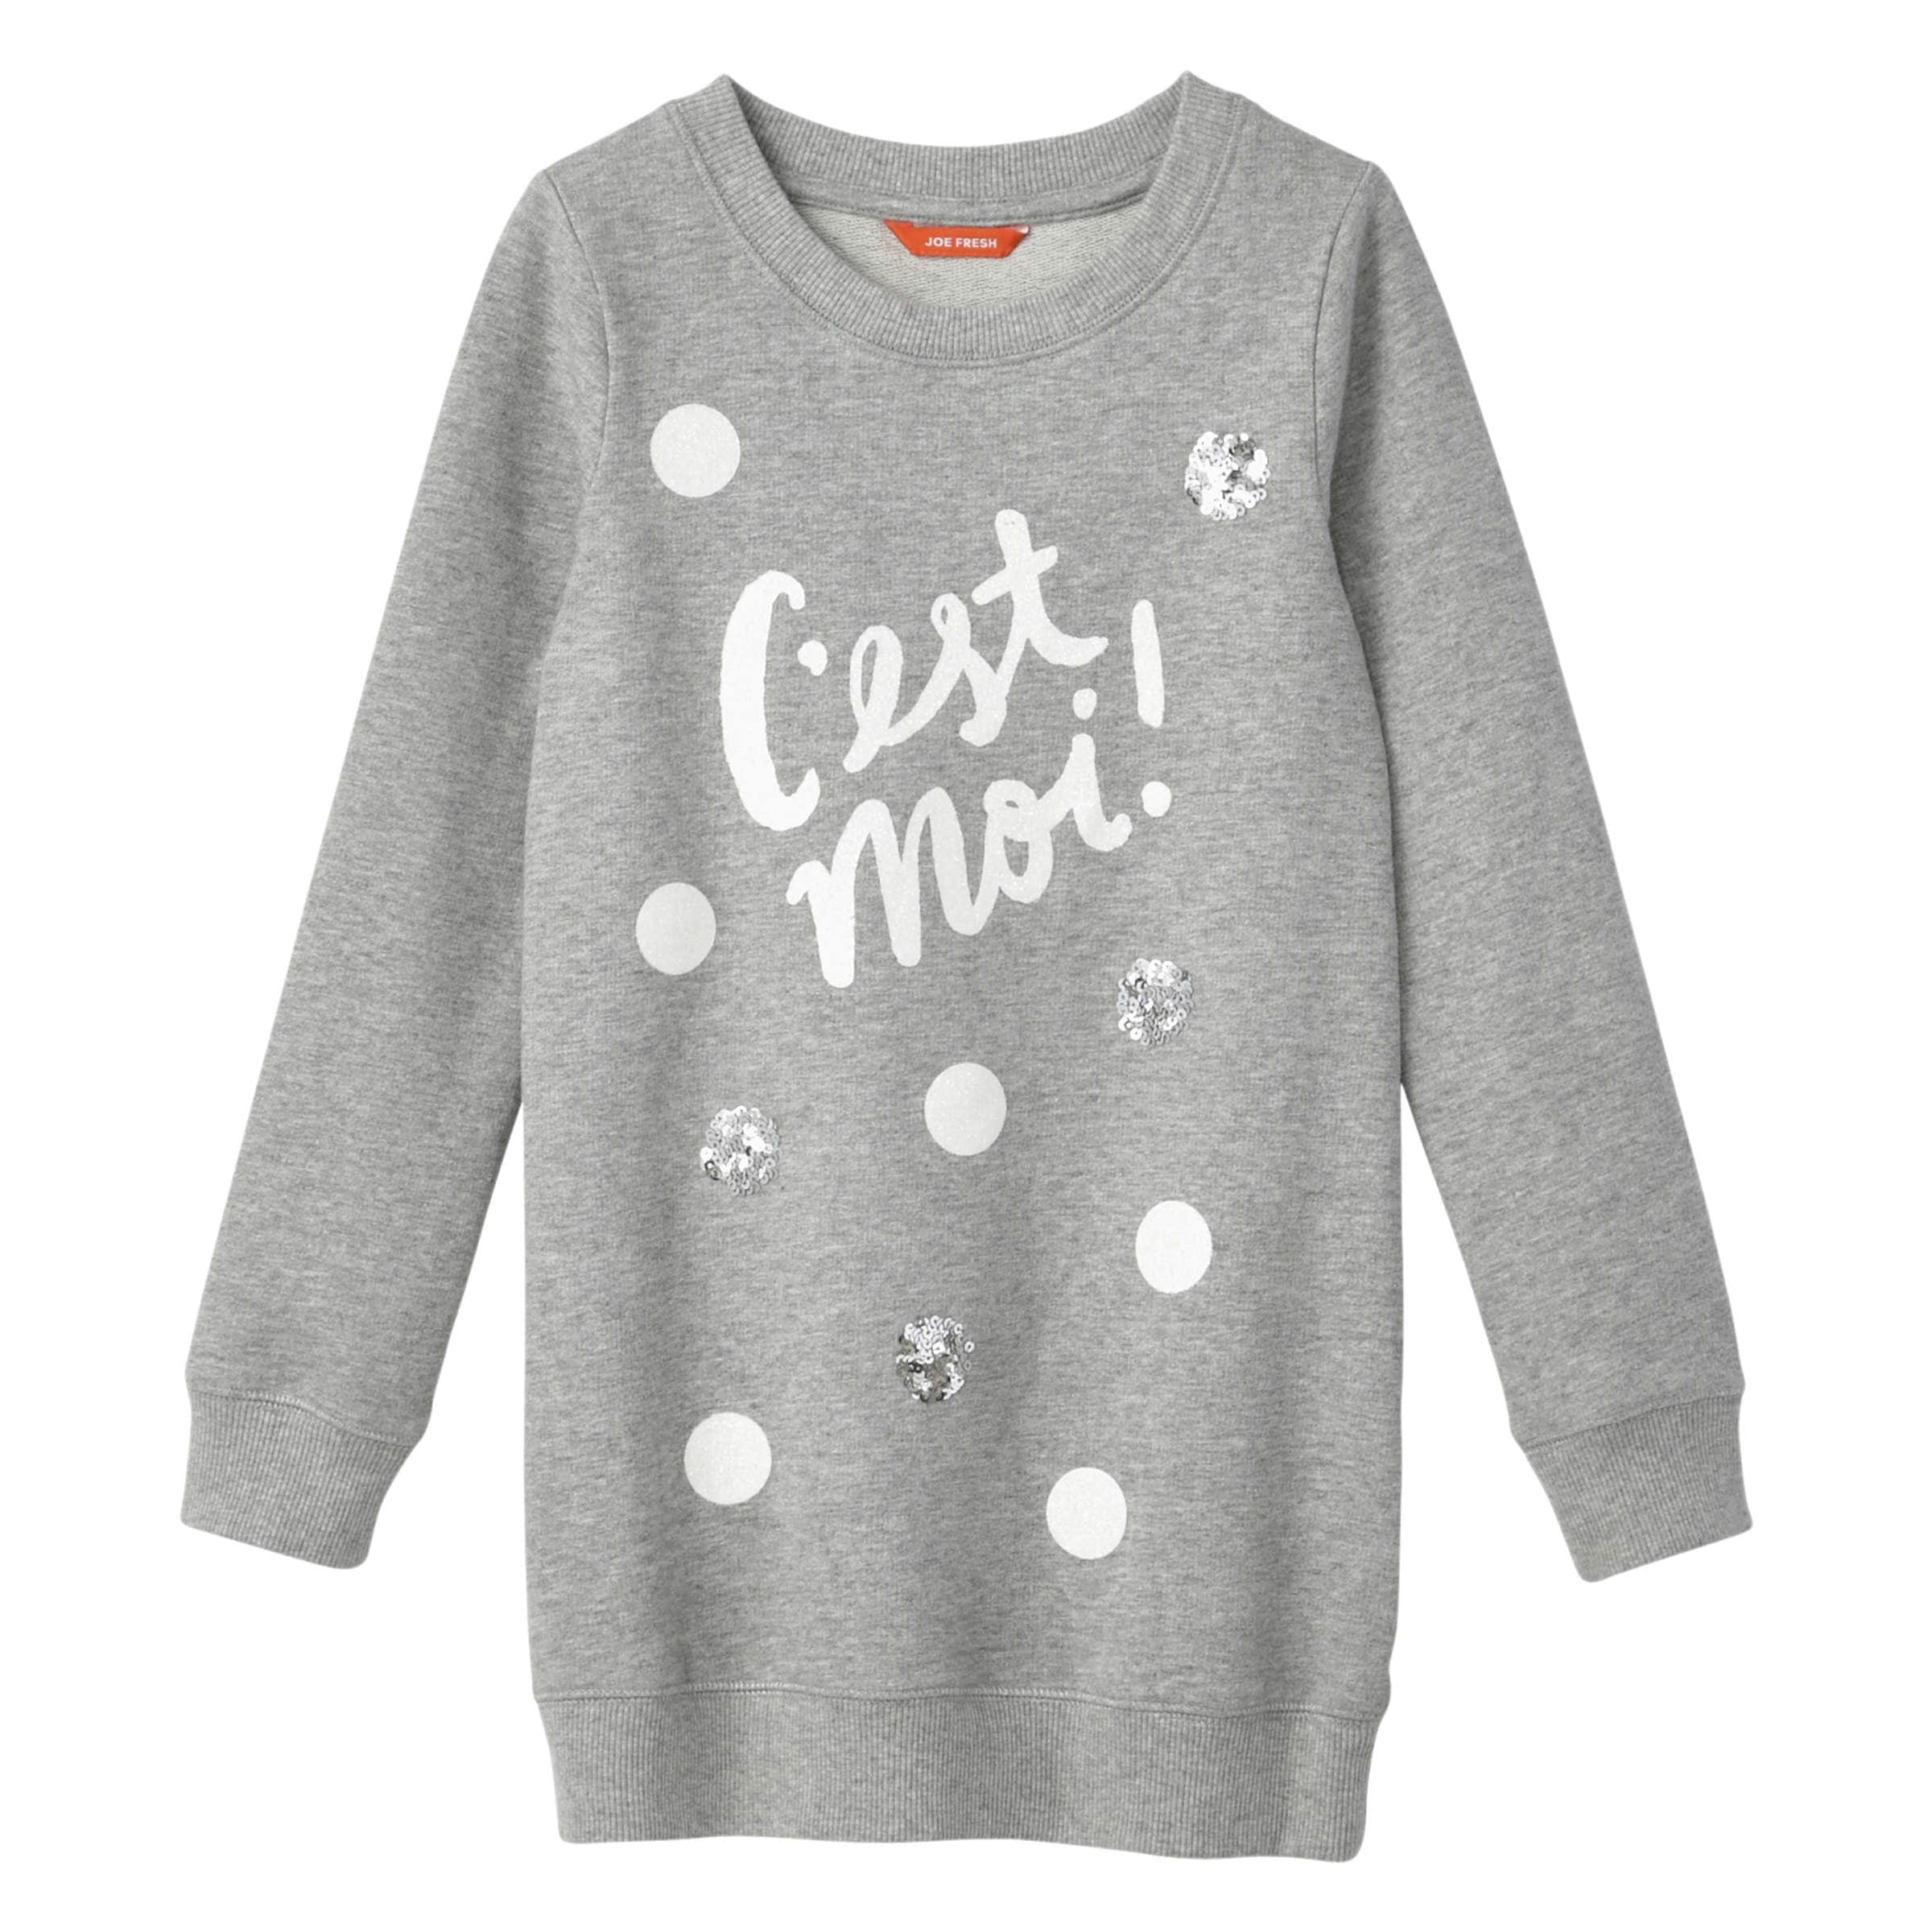 21895ae01a Joe Fresh Kid Girls' Sweatshirt Dress